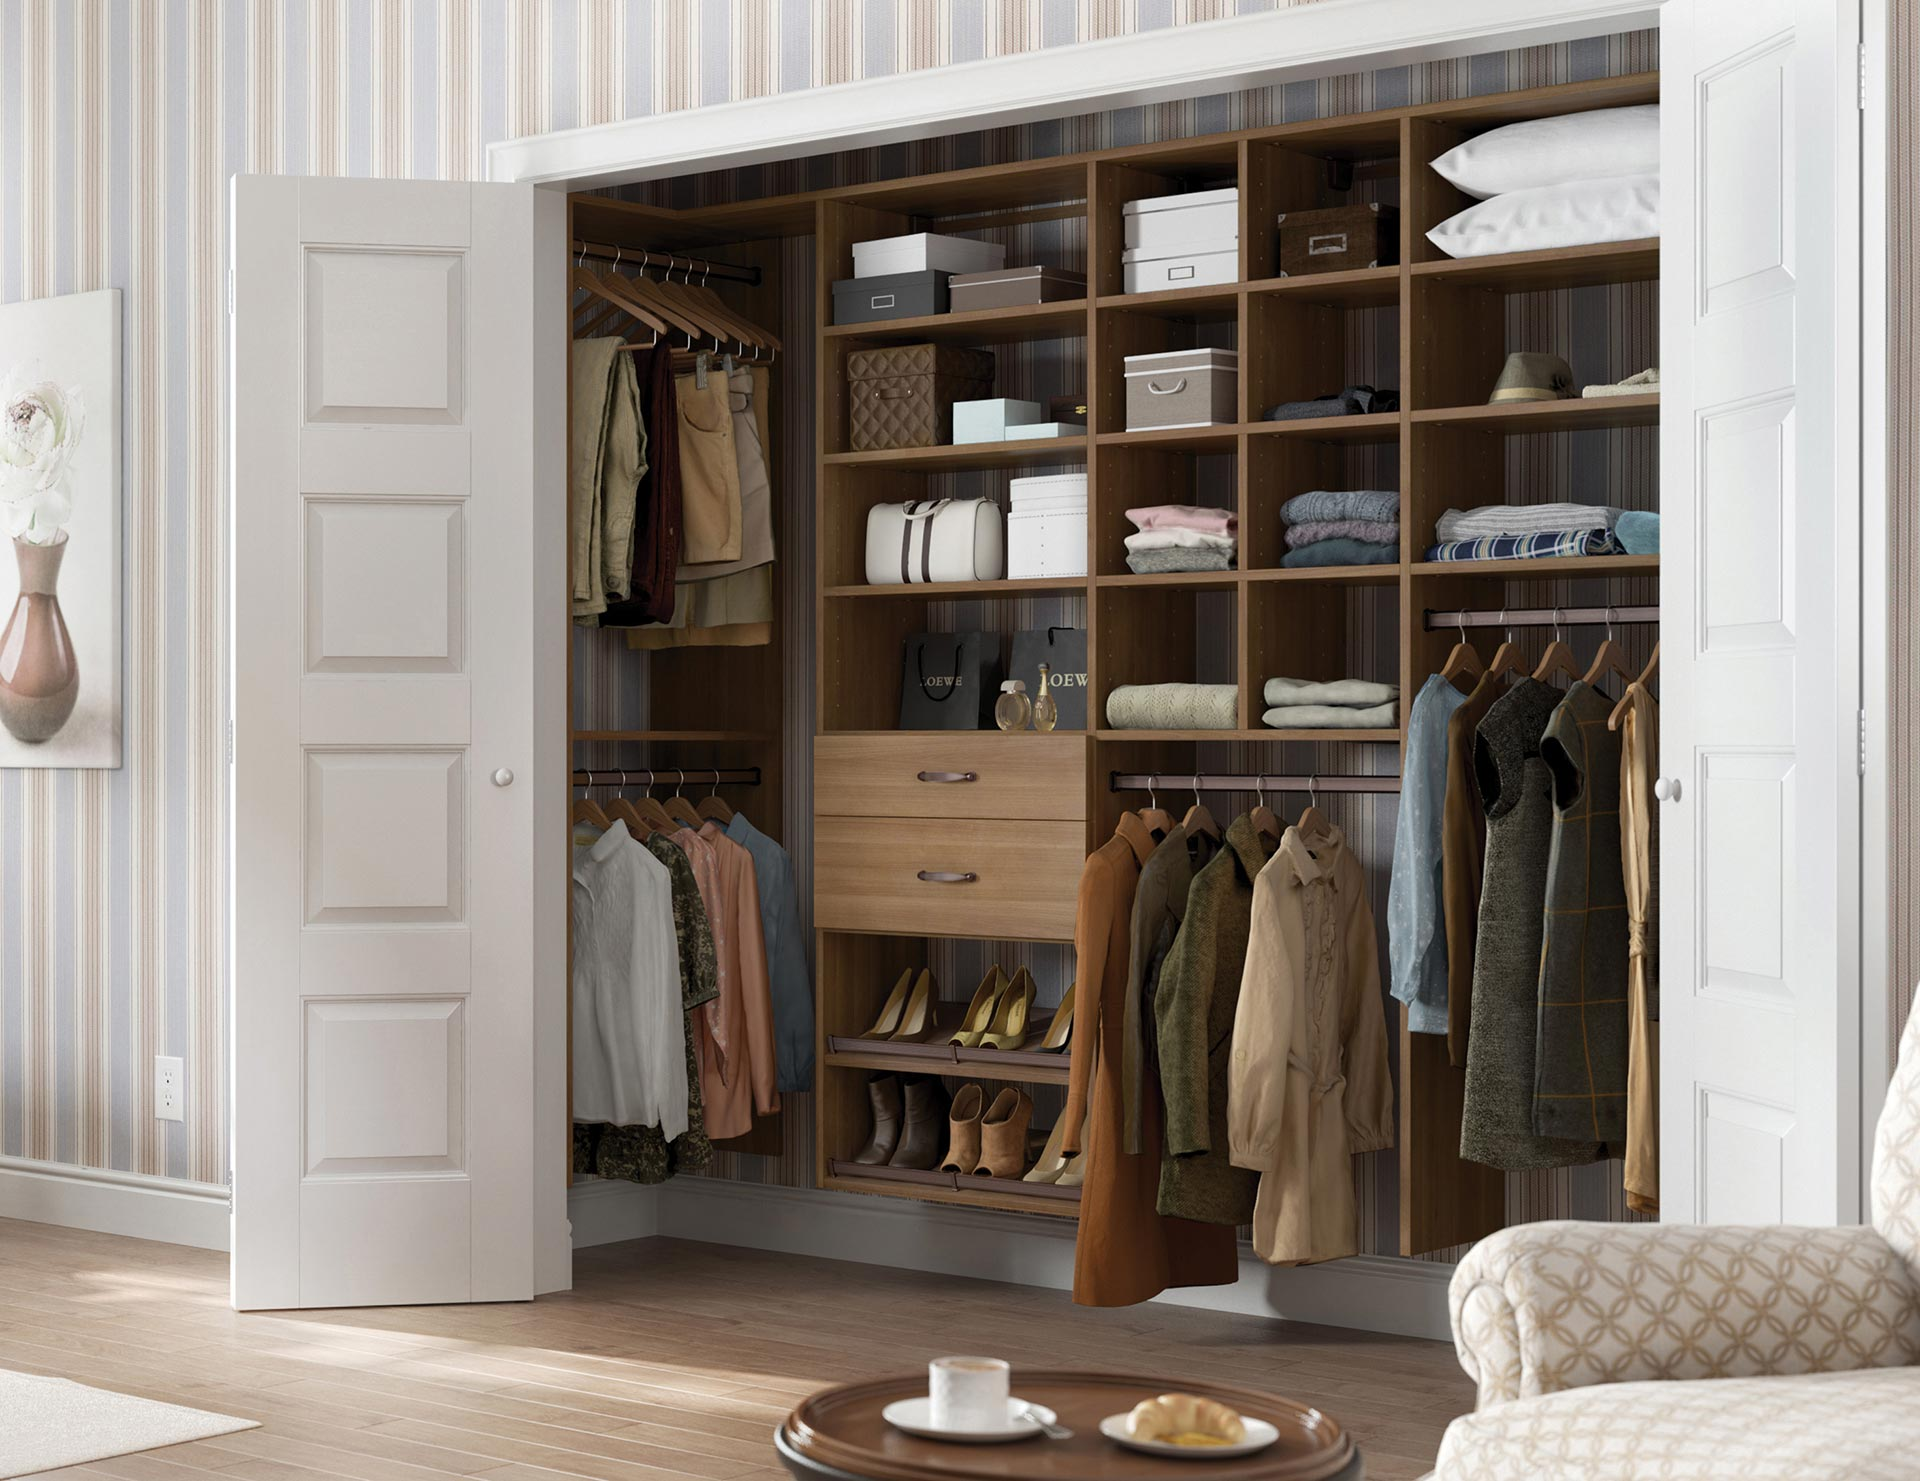 Do It Yourself Home Design: Reach-In Closet Designs